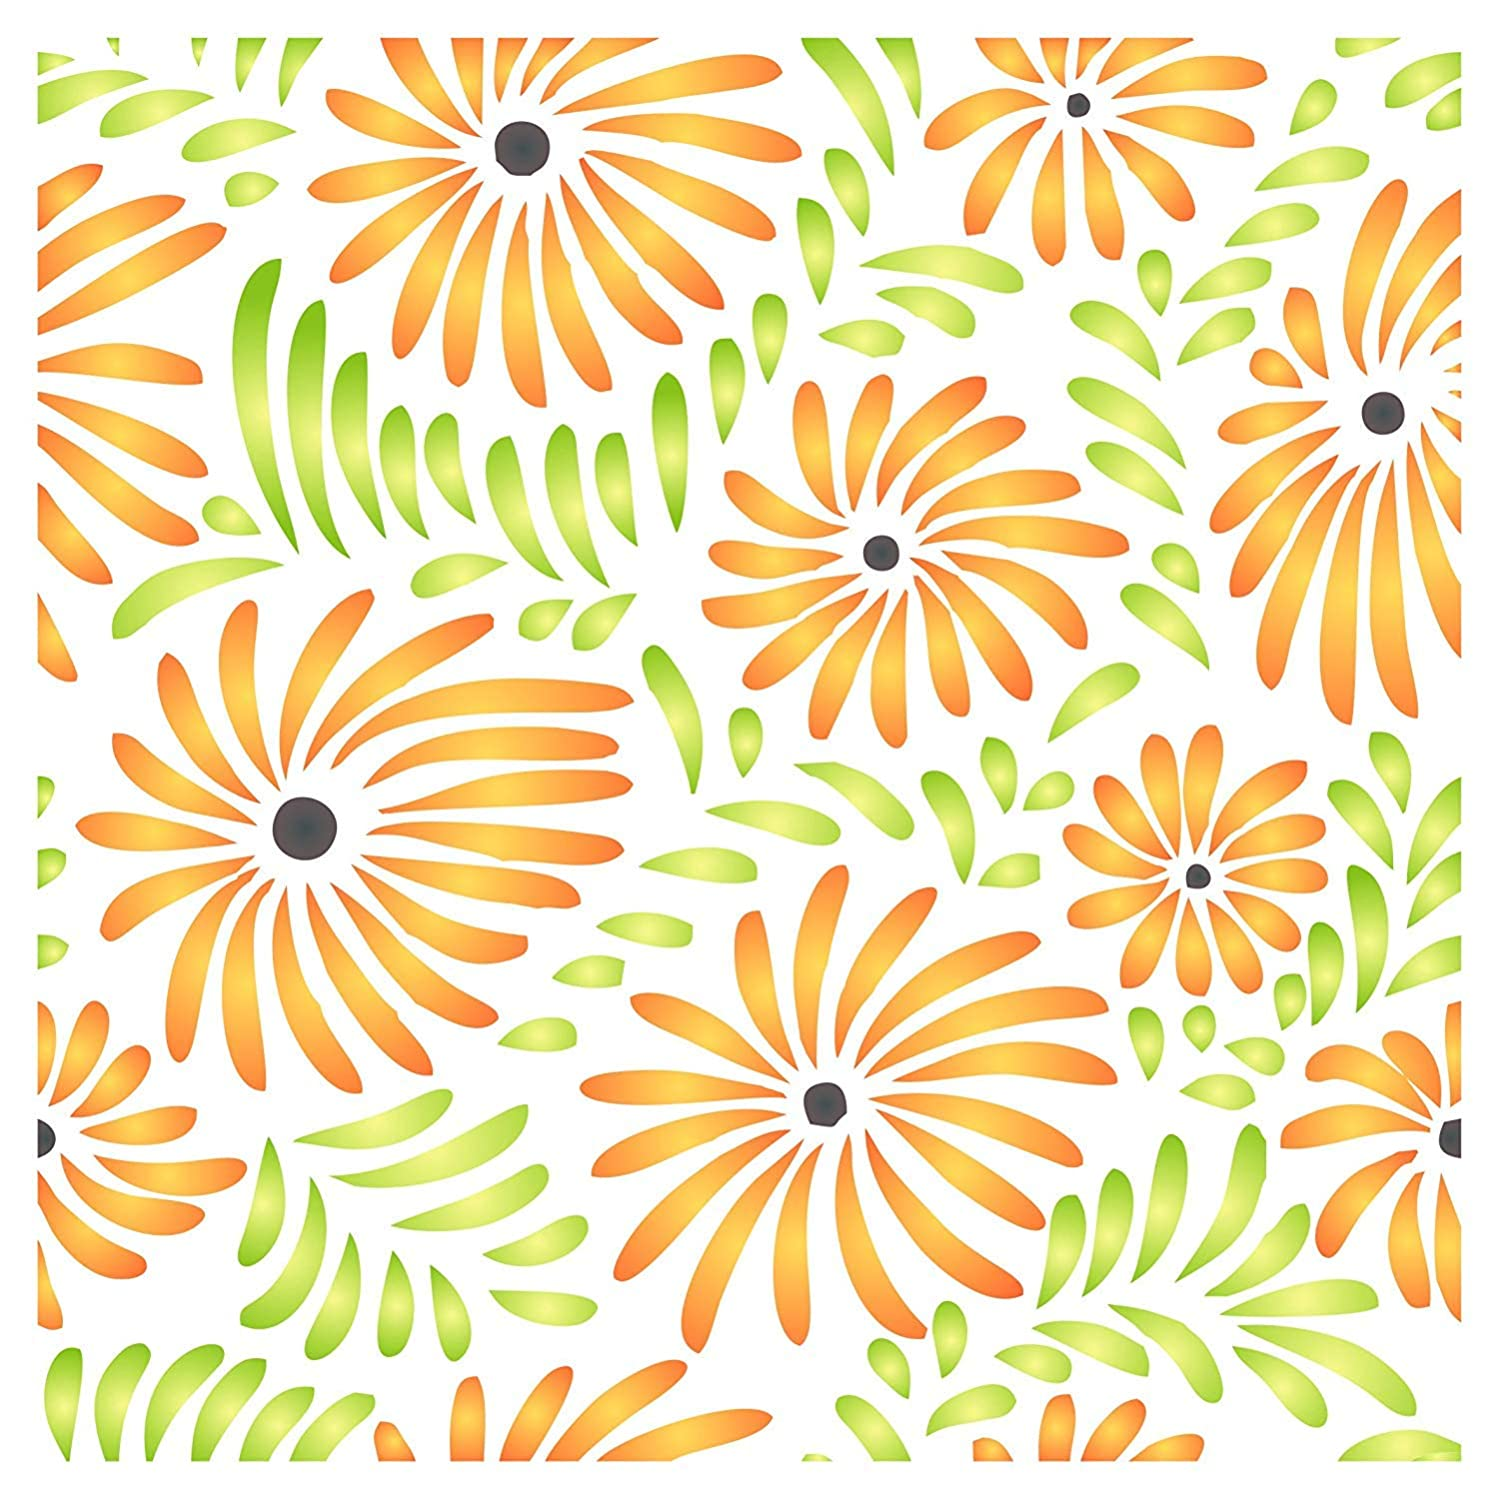 Flower Pattern Stencil - 6.5 x 6.5 inch (S) - Reusable Flora Allover Daisy Pattern Wall Stencils for Painting - Use on Paper Projects Scrapbook Journal Walls Floors Fabric Furniture Glass Wood etc.